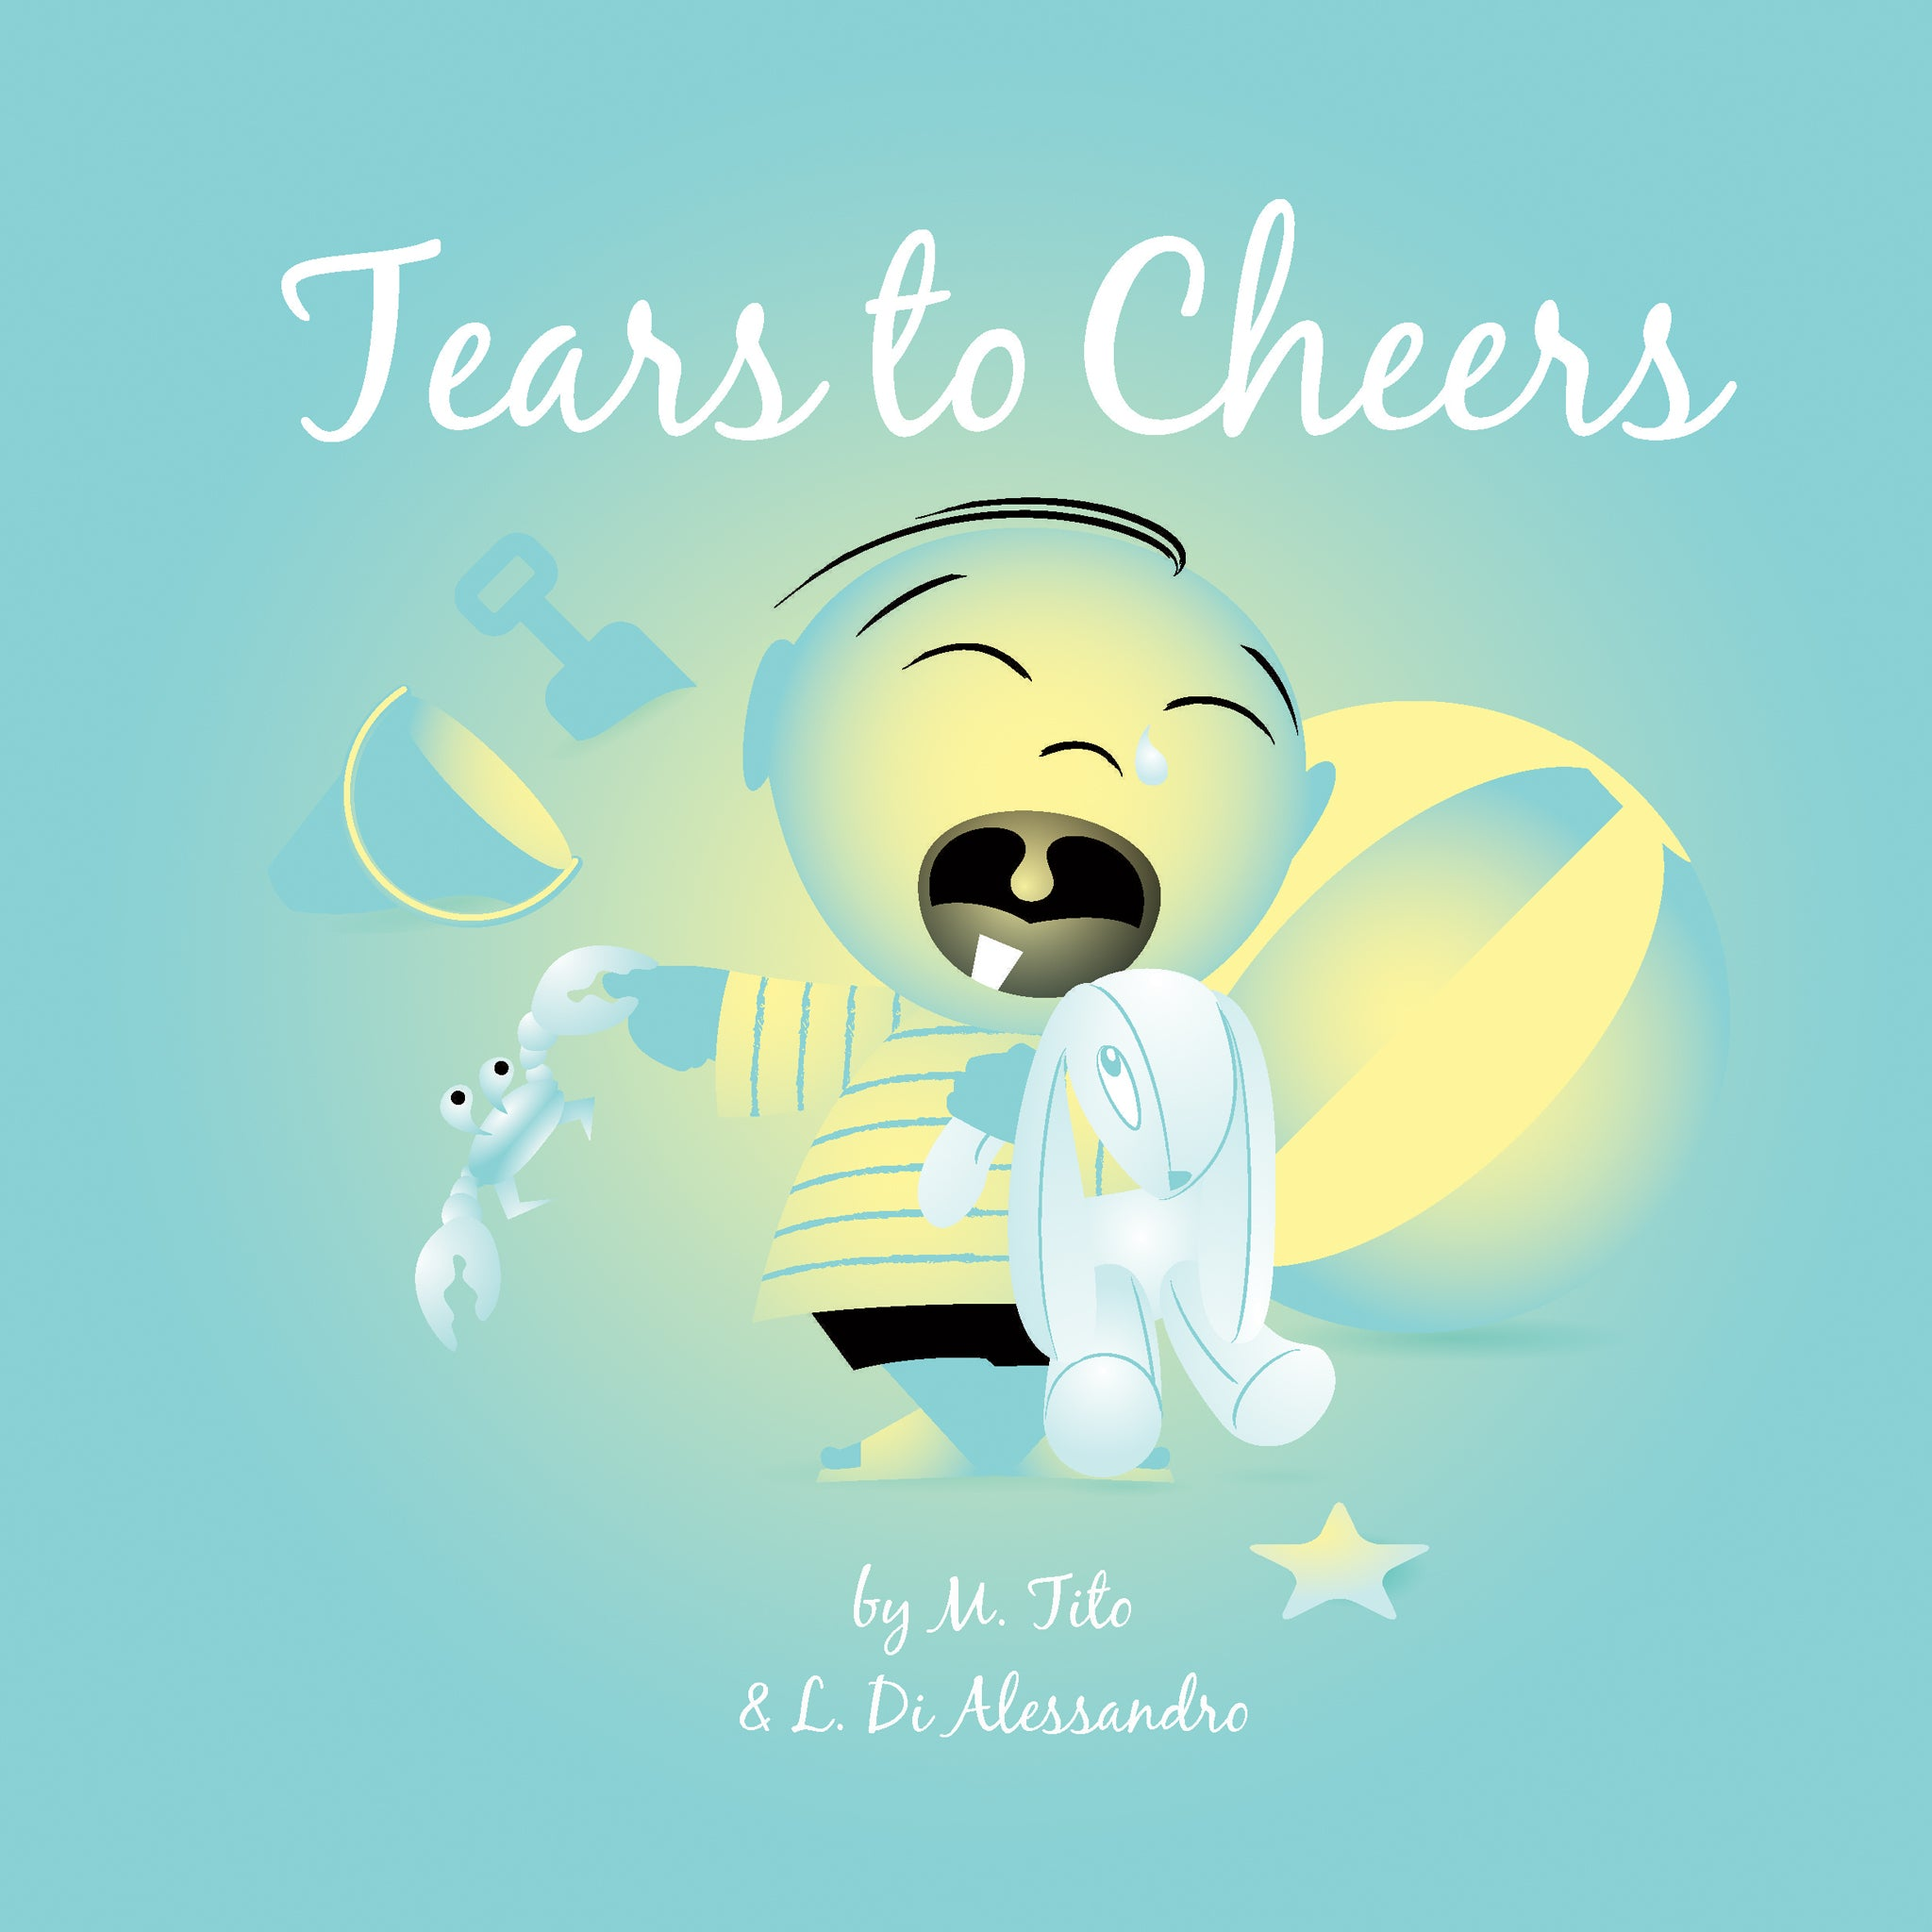 Tears to Cheers